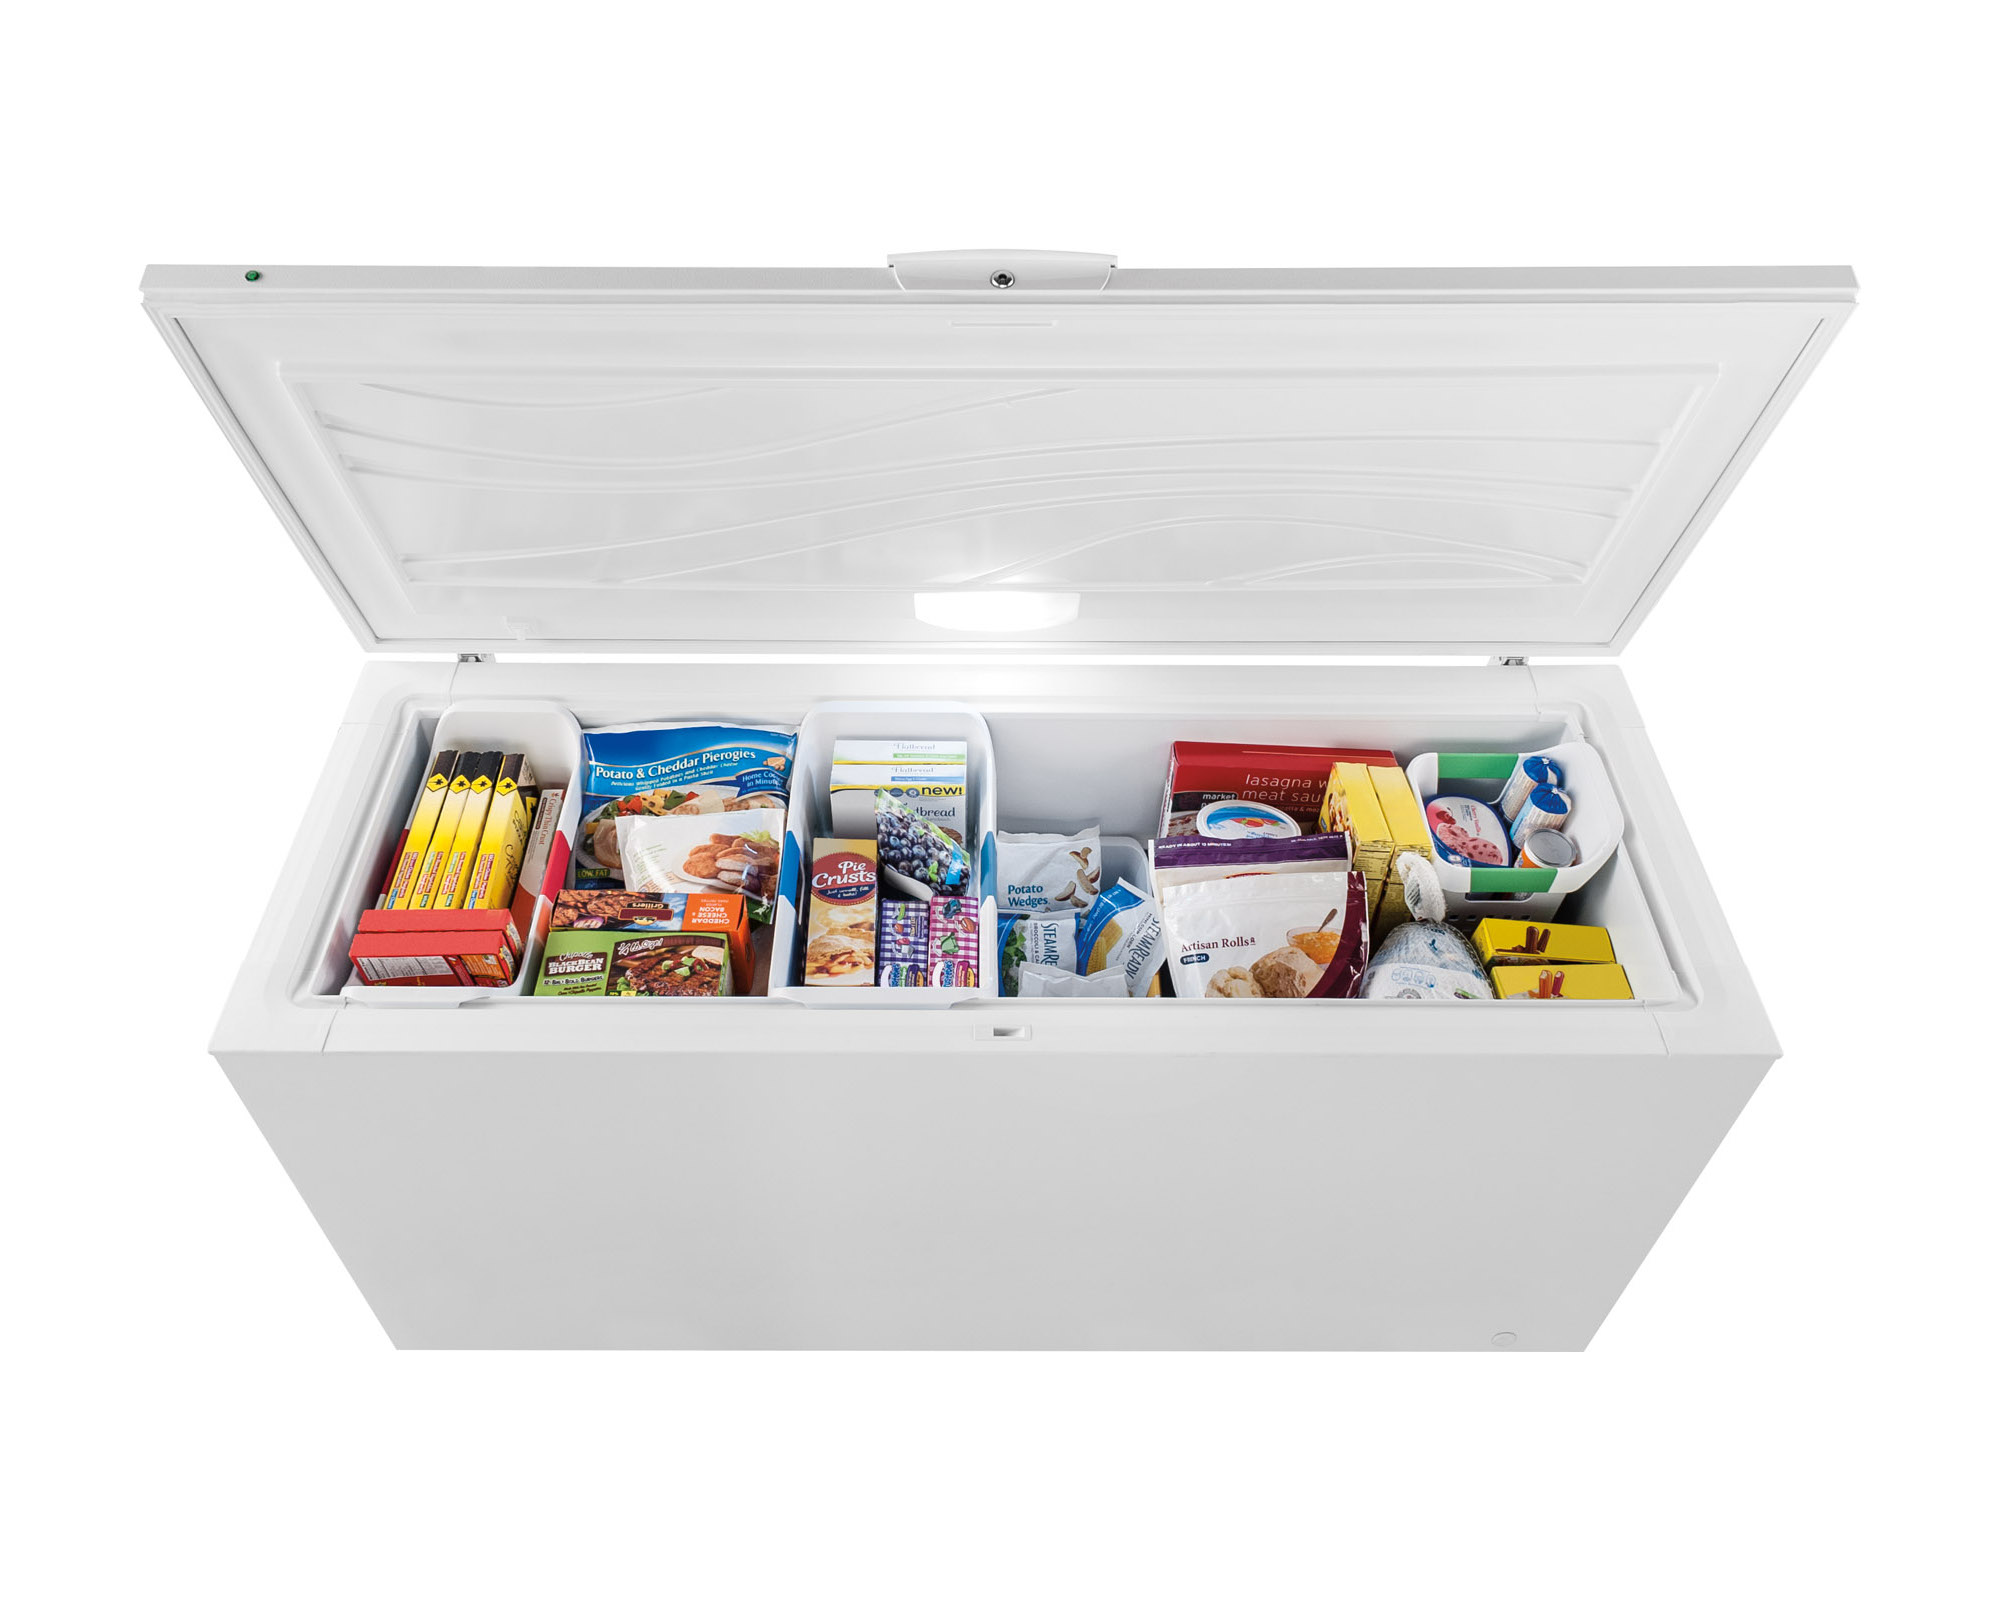 Frigidaire FFFC22M6QW 21.6 cu. ft. Chest Freezer - White